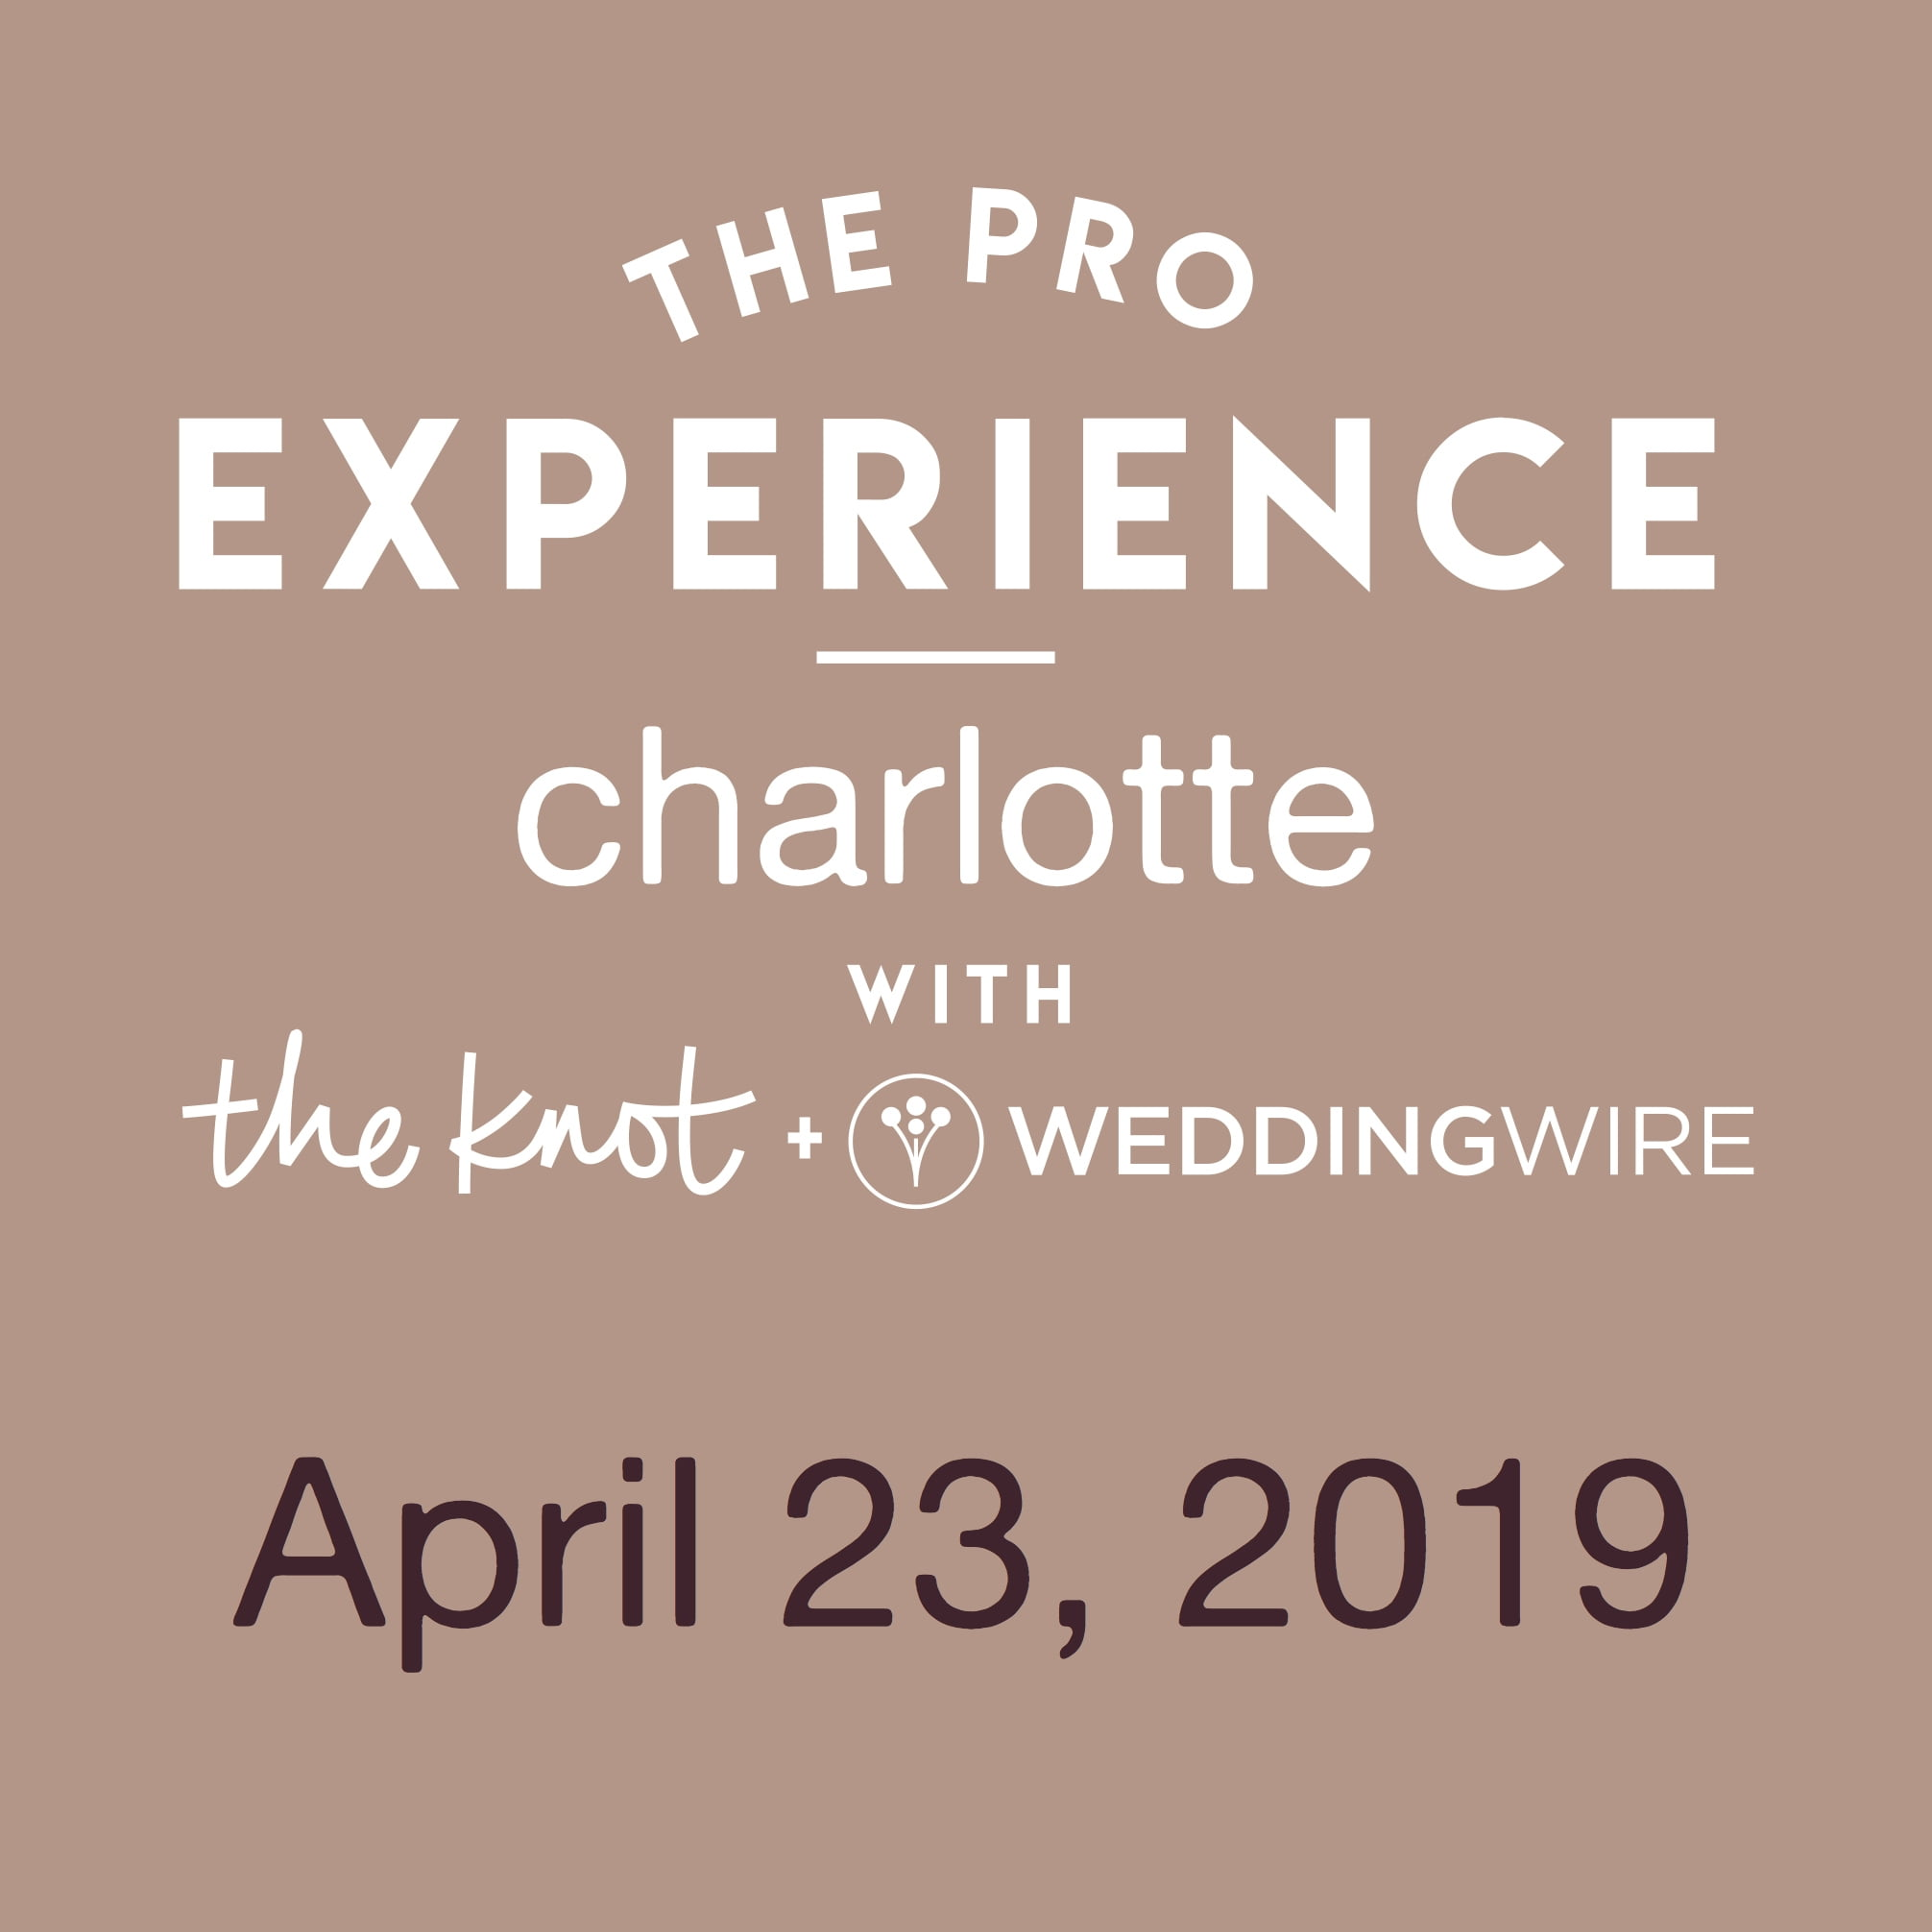 The Pro Experience with The Knot & WeddingWire - Charlotte